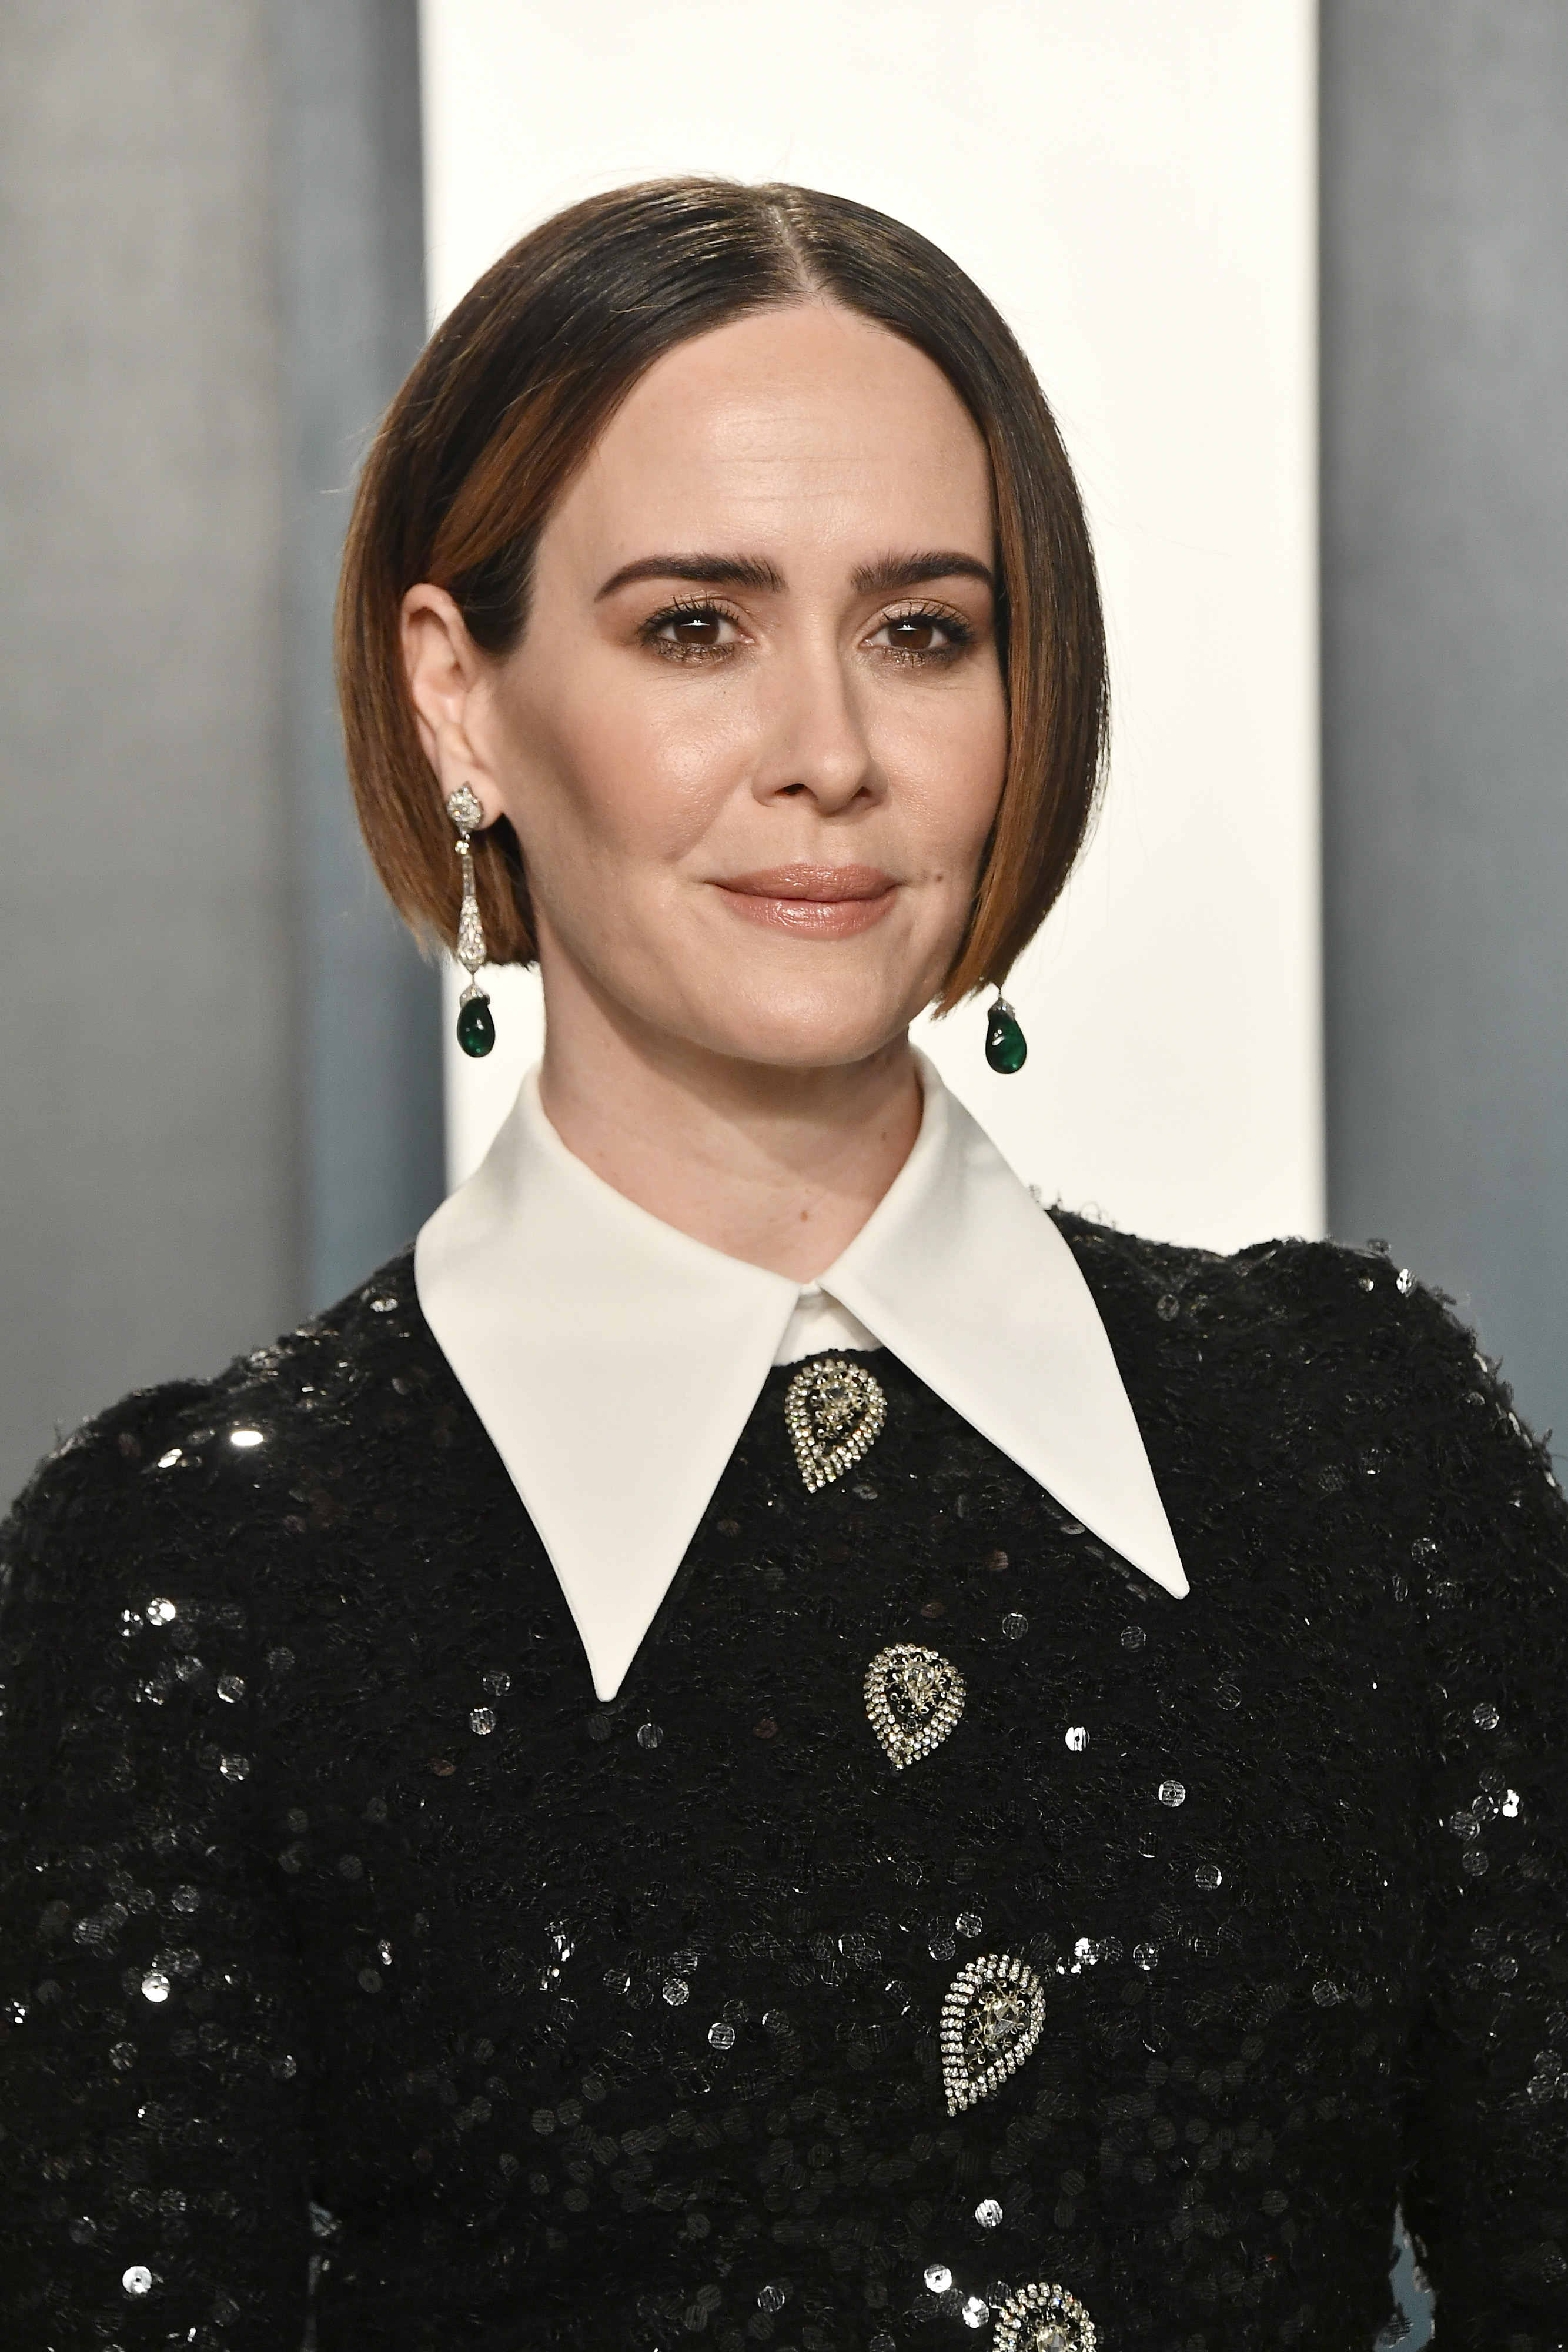 Sarah Paulson says she regrets wearing a 'fat suit' to portray Linda